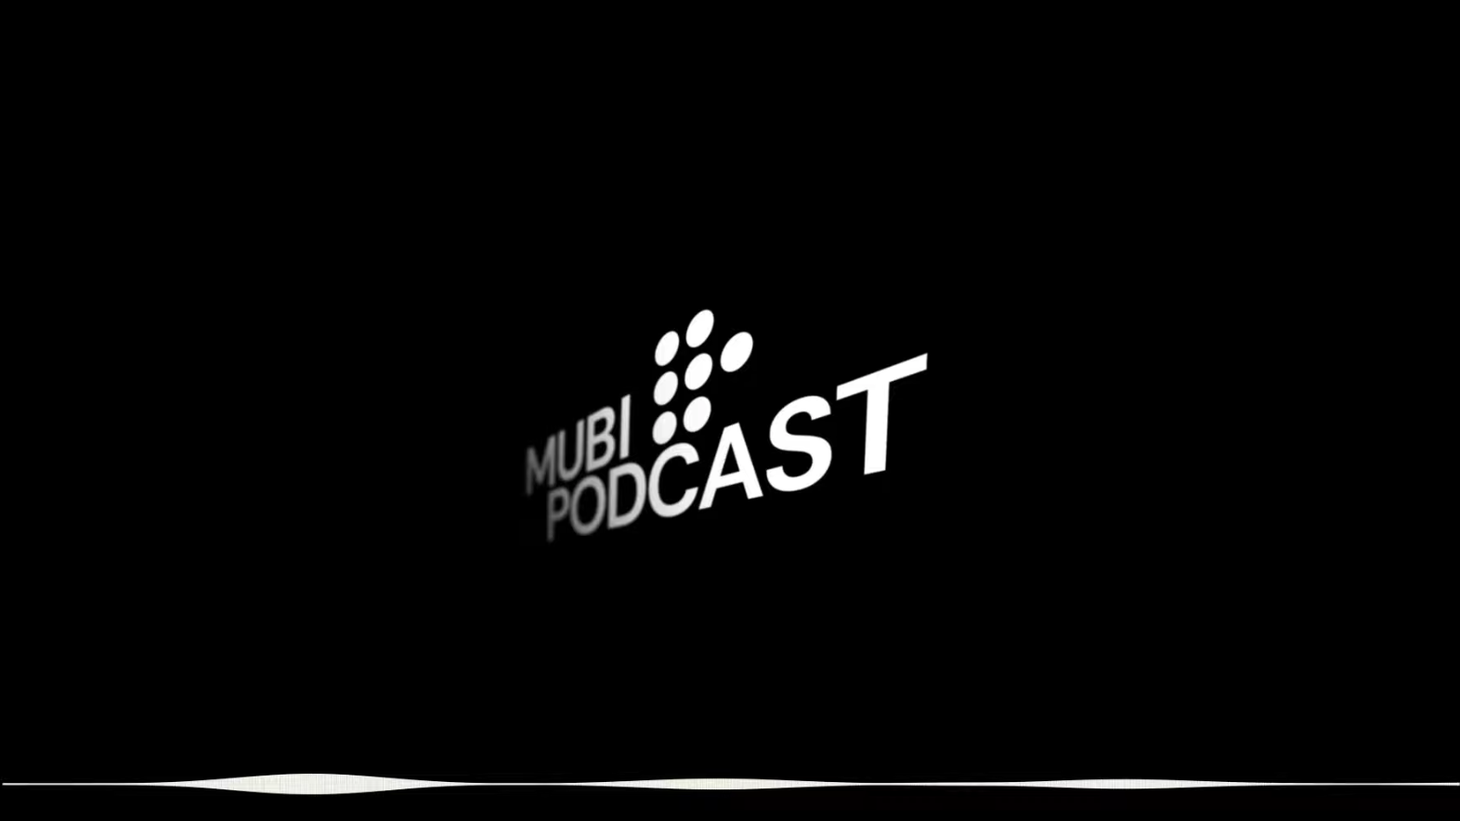 """Hosted by Rico Gagliano, """"MUBI Podcast"""" explores film stories worldwide."""